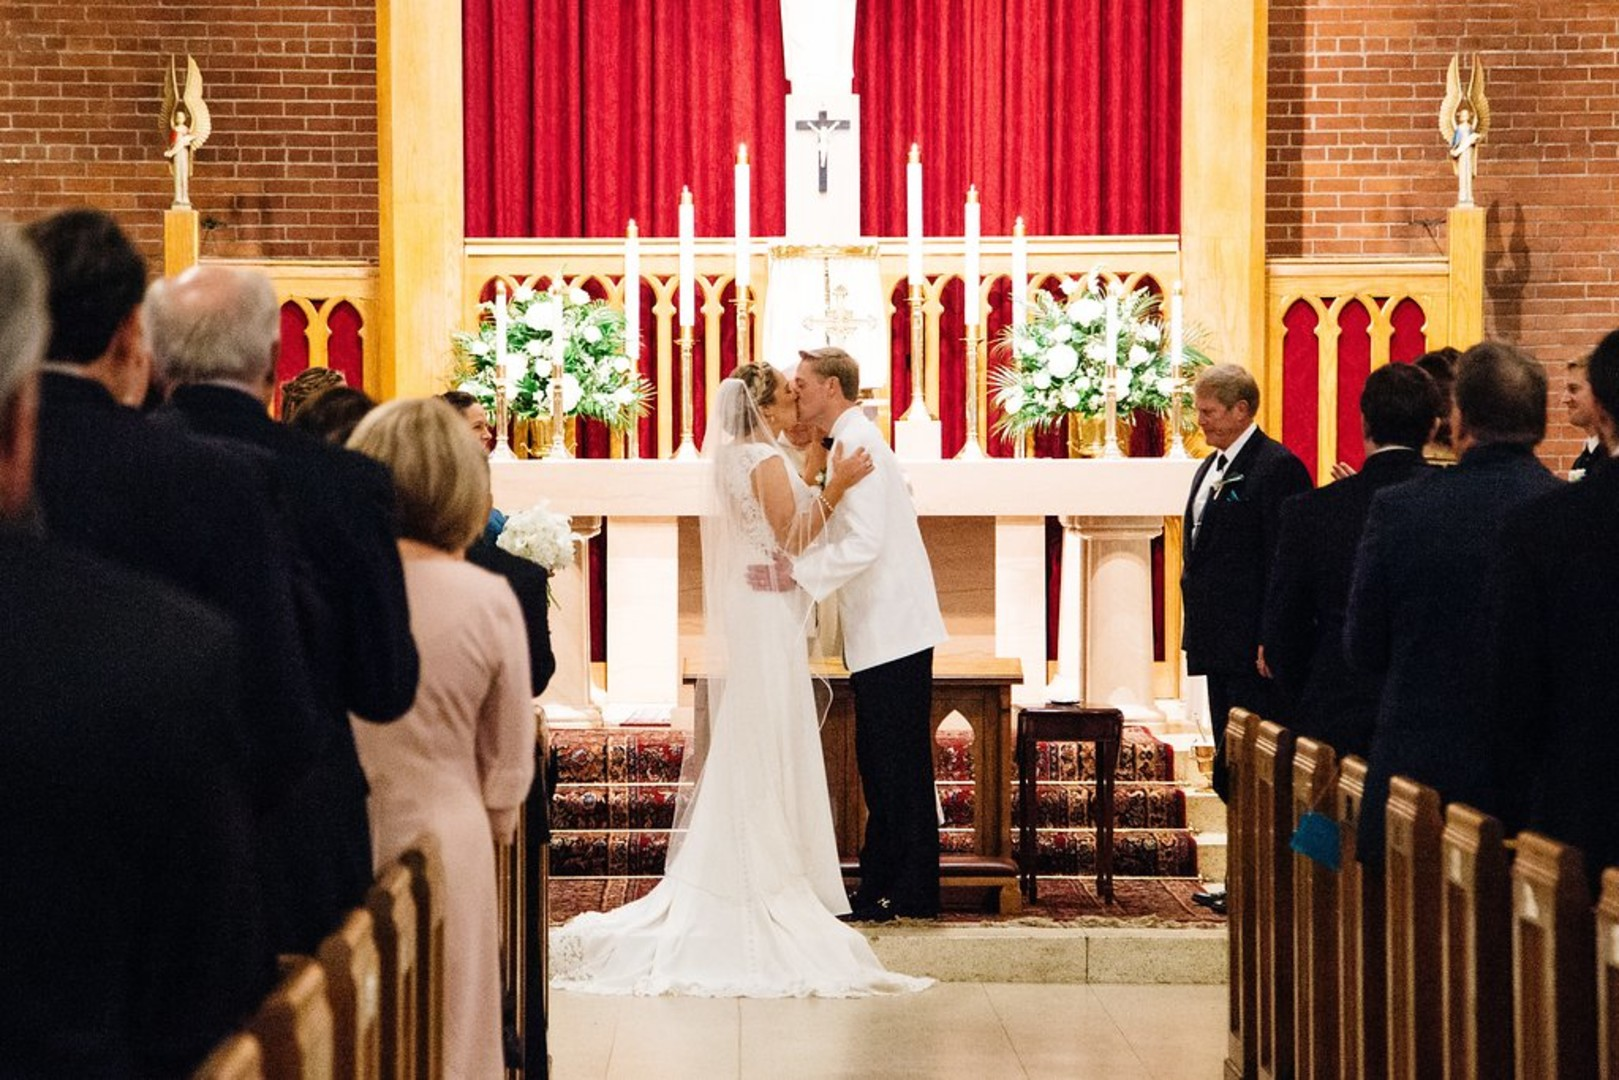 Frances + Steven: Teal and Gold Wedding at Sacred Heart Catholic Church | Palmetto State Weddings